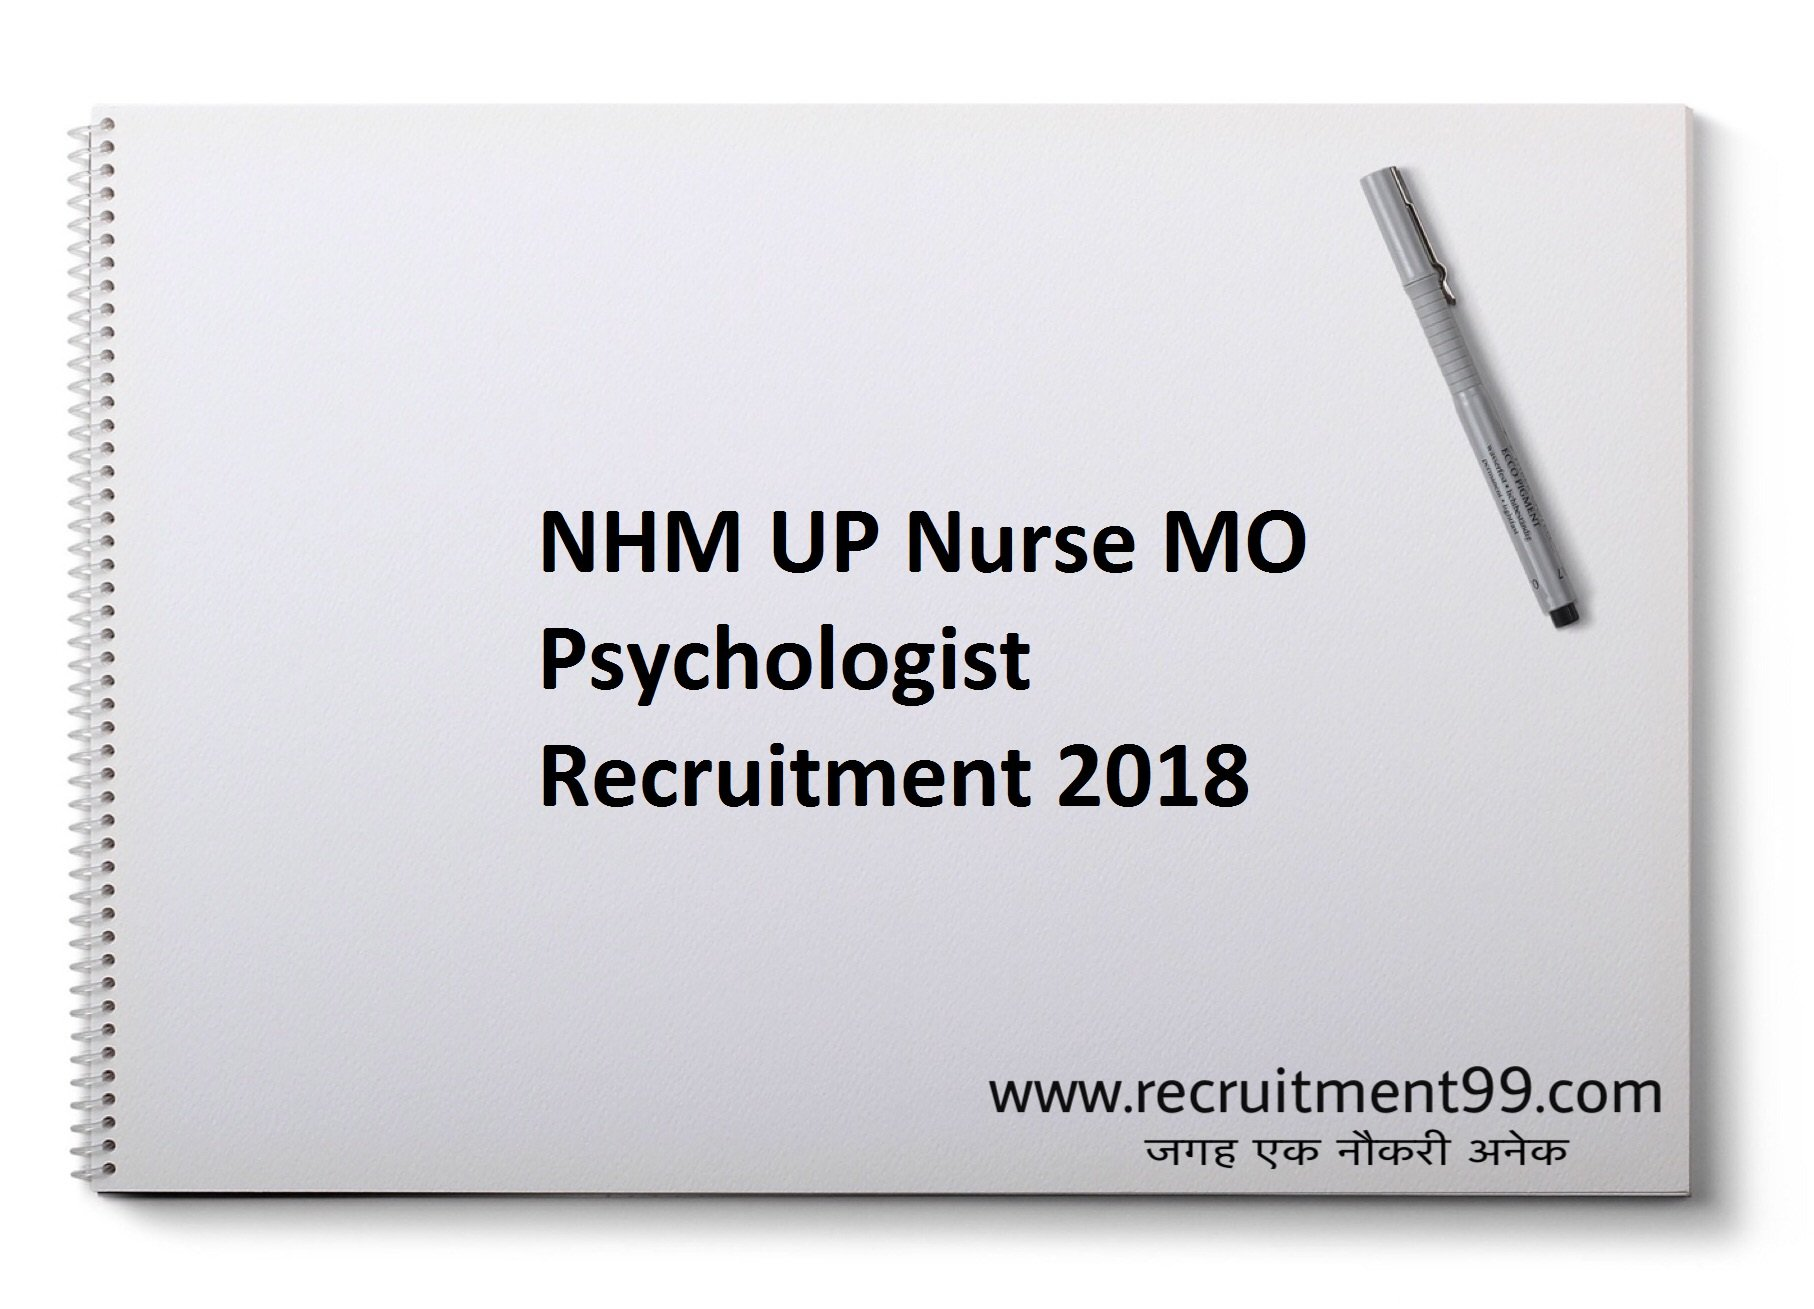 NHM UP Nurse Worker MO Psychologist Recruitment Admit Card Result 2018